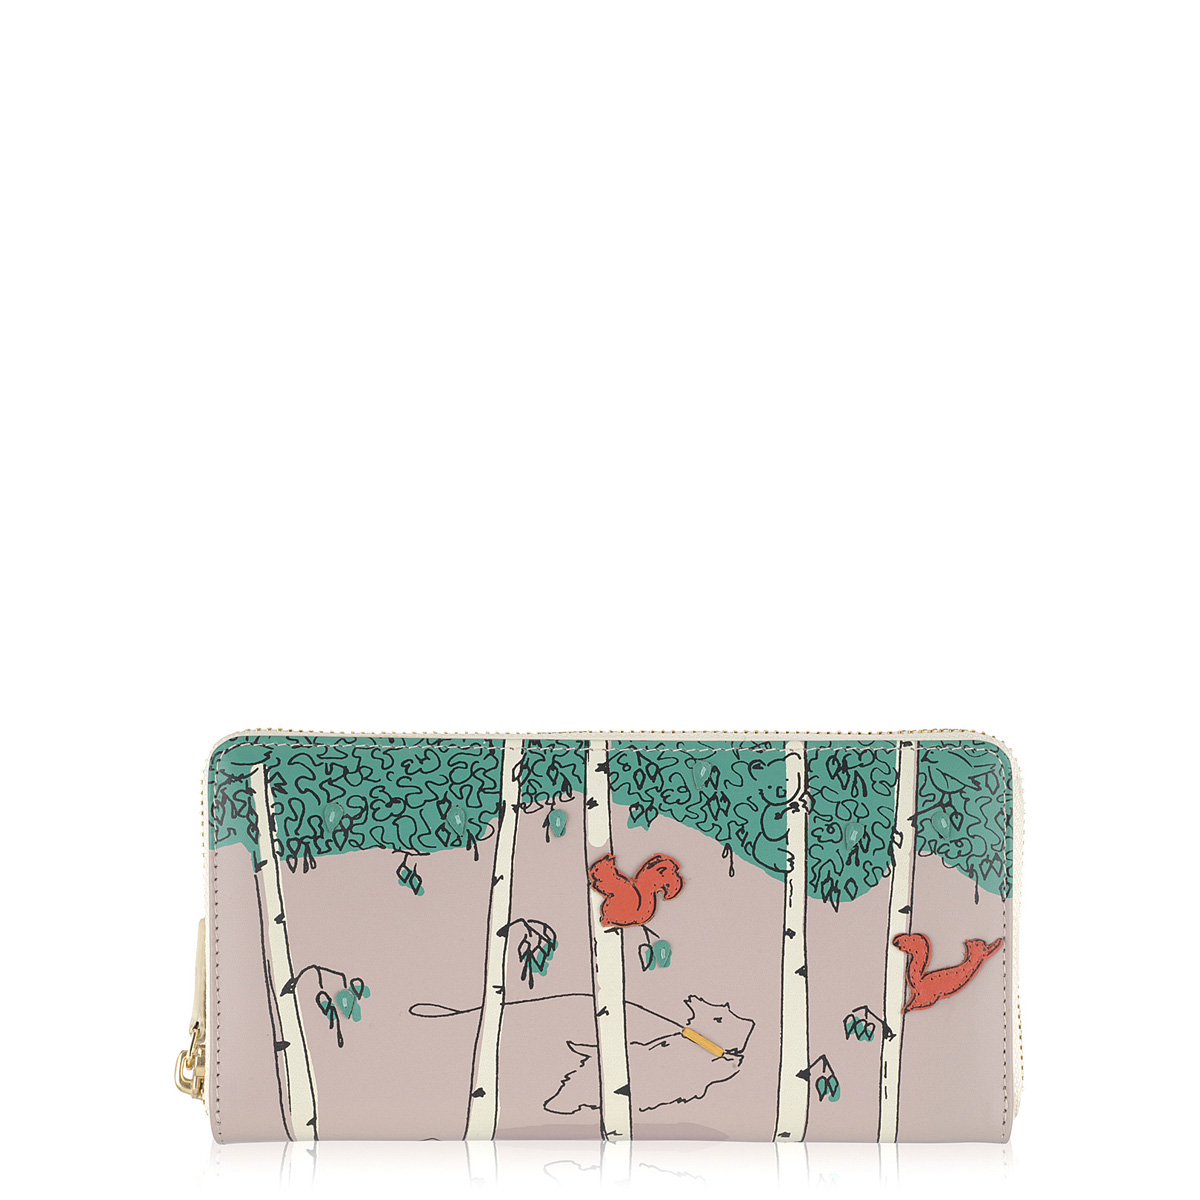 Radley Leader of the Pack Large Zip Purse